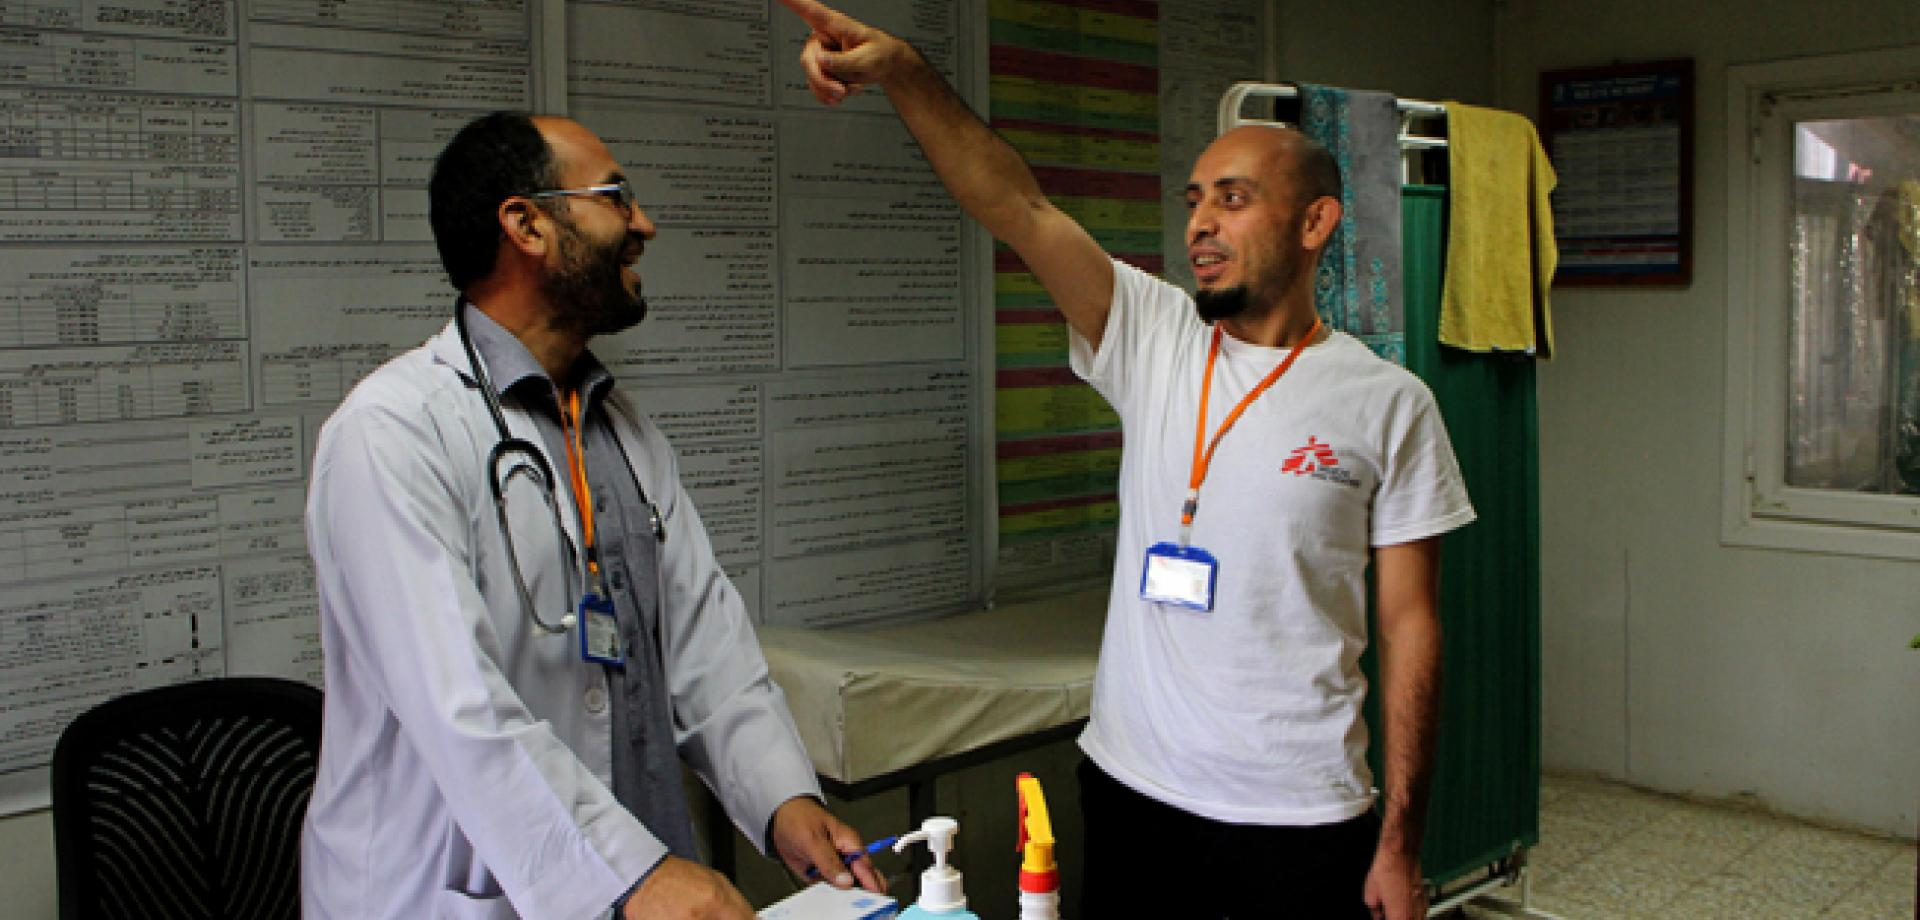 Sleiman and a colleague at Ahmed Shah Baba hospital.